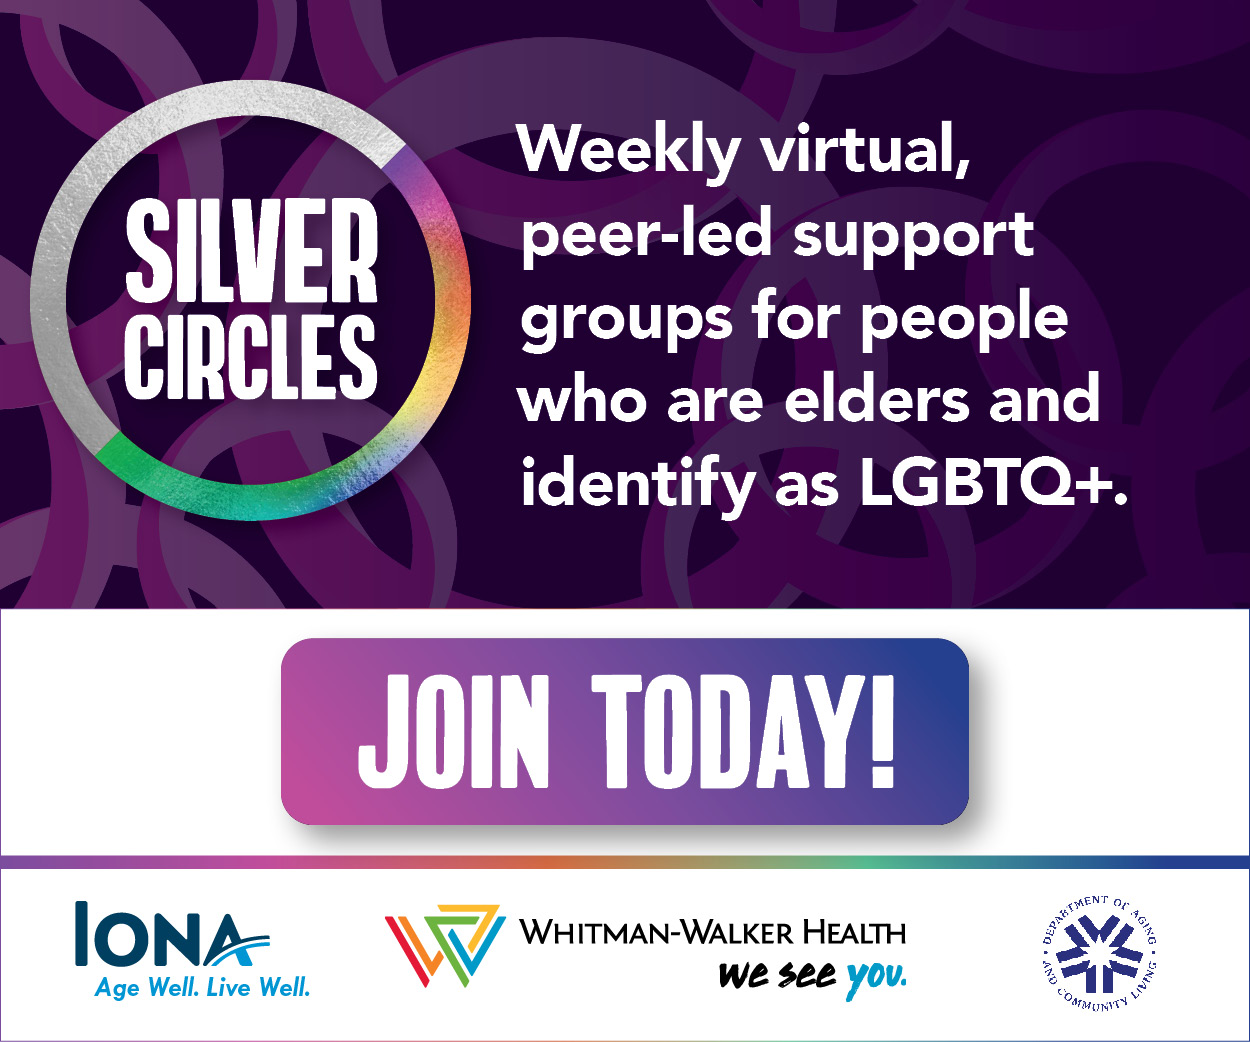 Silver Circles: Weekly virtual peer-led support groups for people who are elders and LGBTQ+.